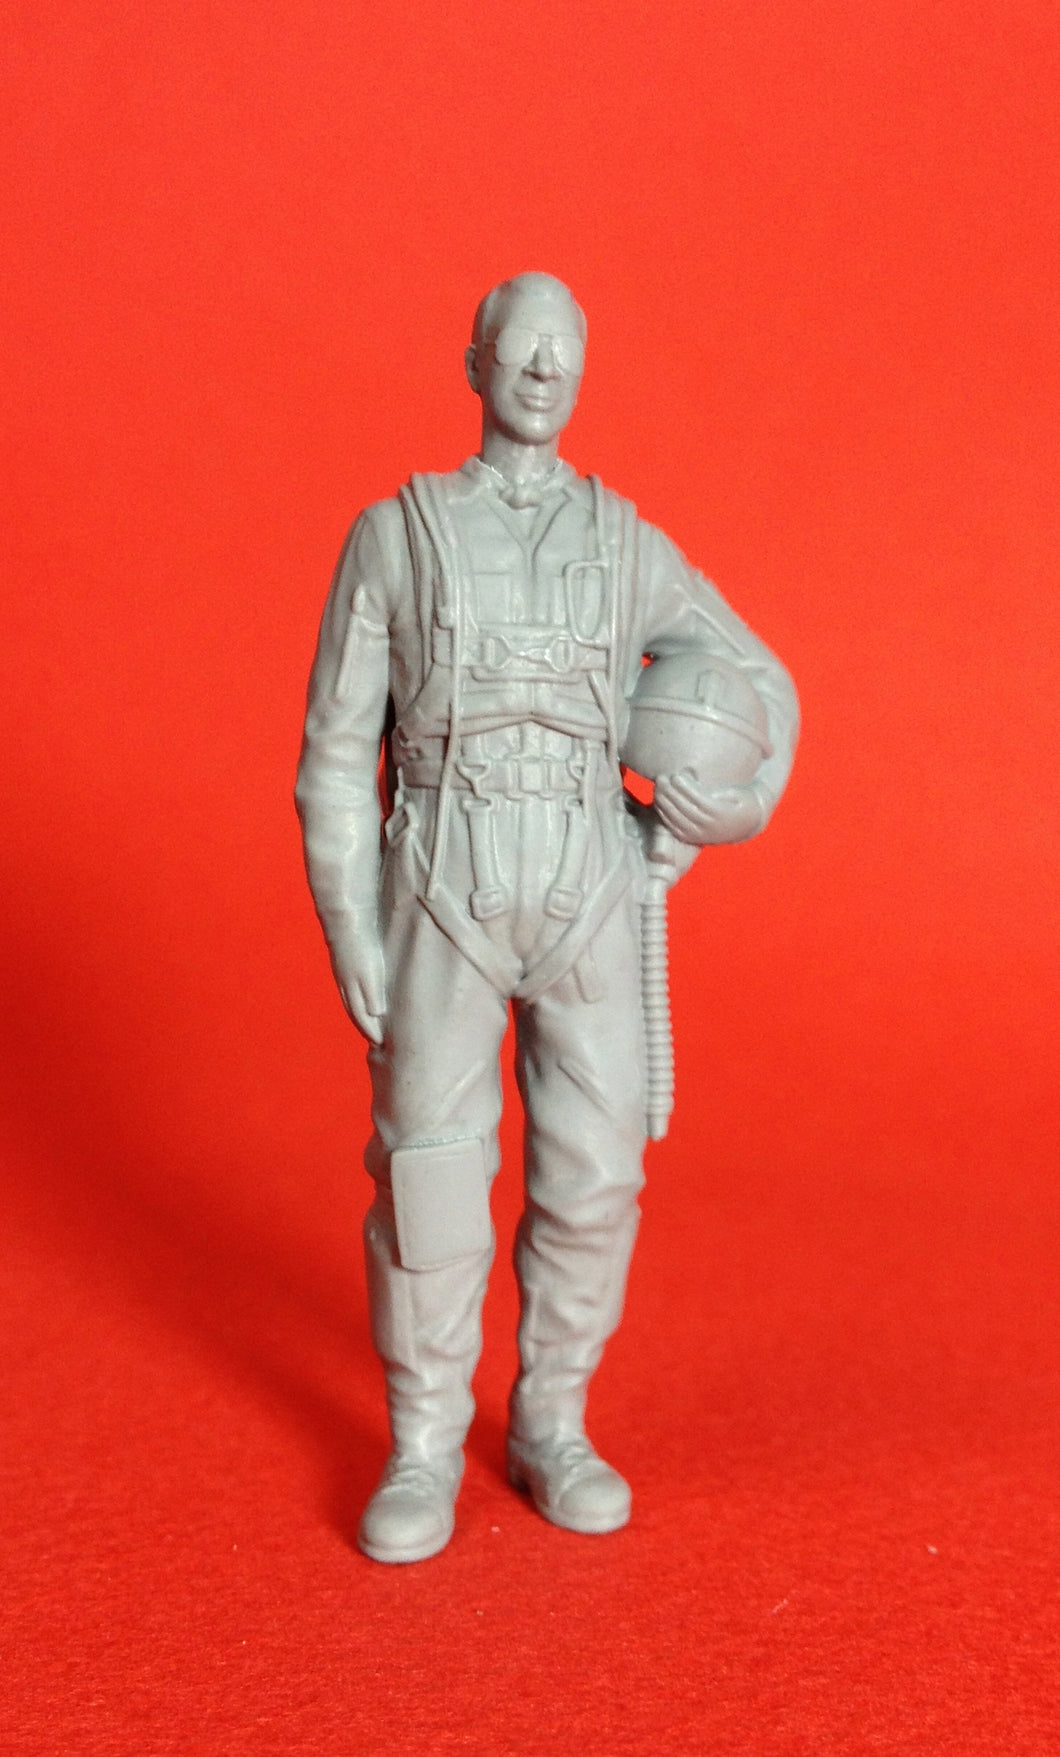 1/48 scale Swedish pilot as seen from the 1950s to the early 1970s. Art # 48P002